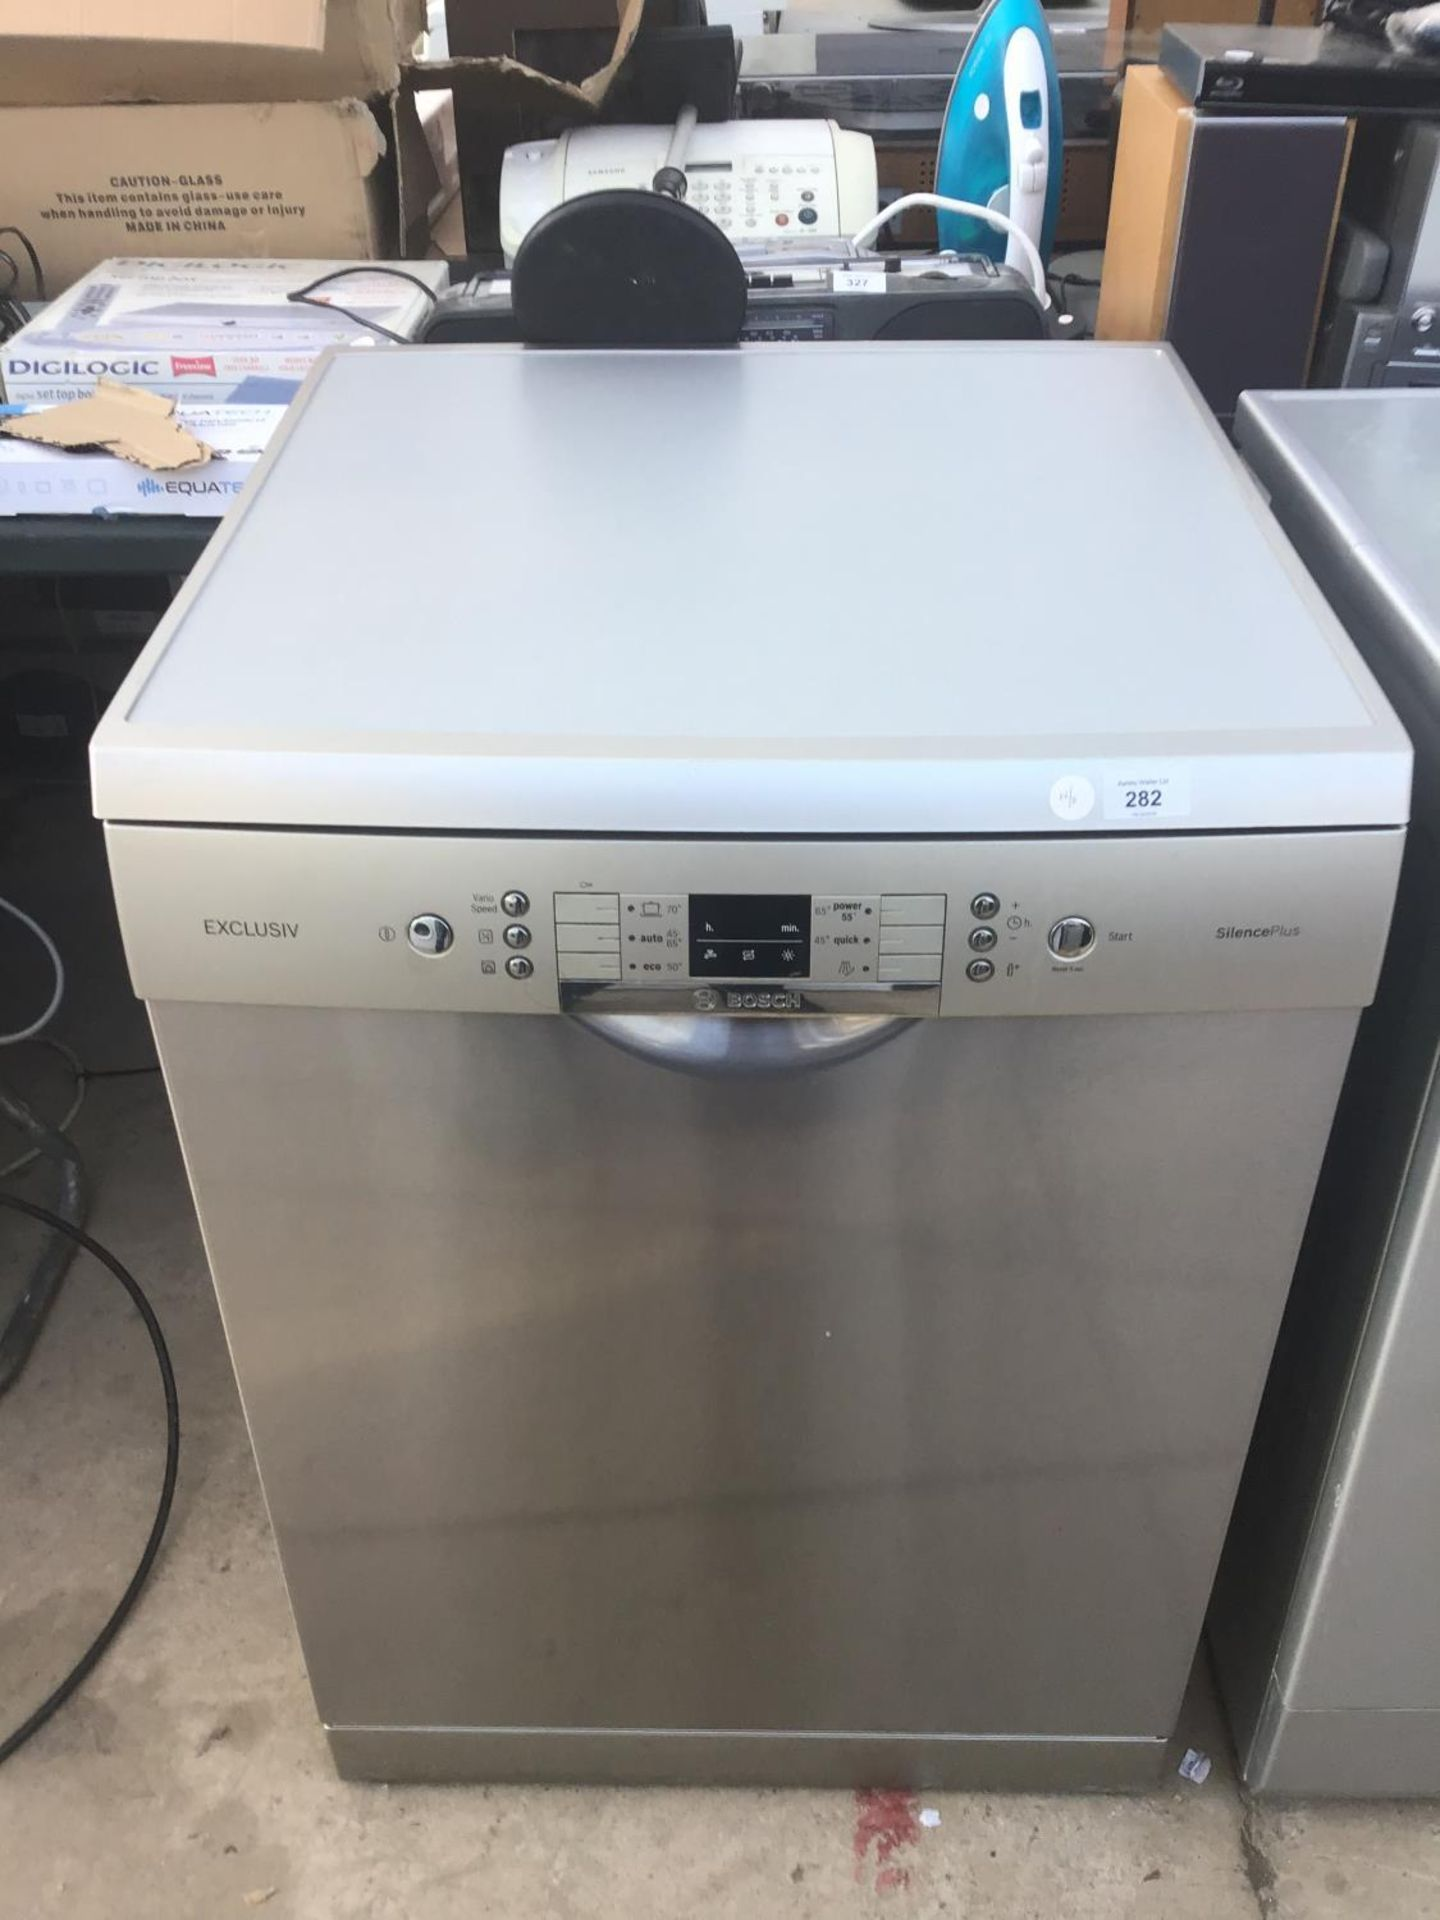 Lot 282 - A SILVER EXCLUSIV SILENCE PLUS DISHWASHER IN CLEAN AND WORKING ORDER